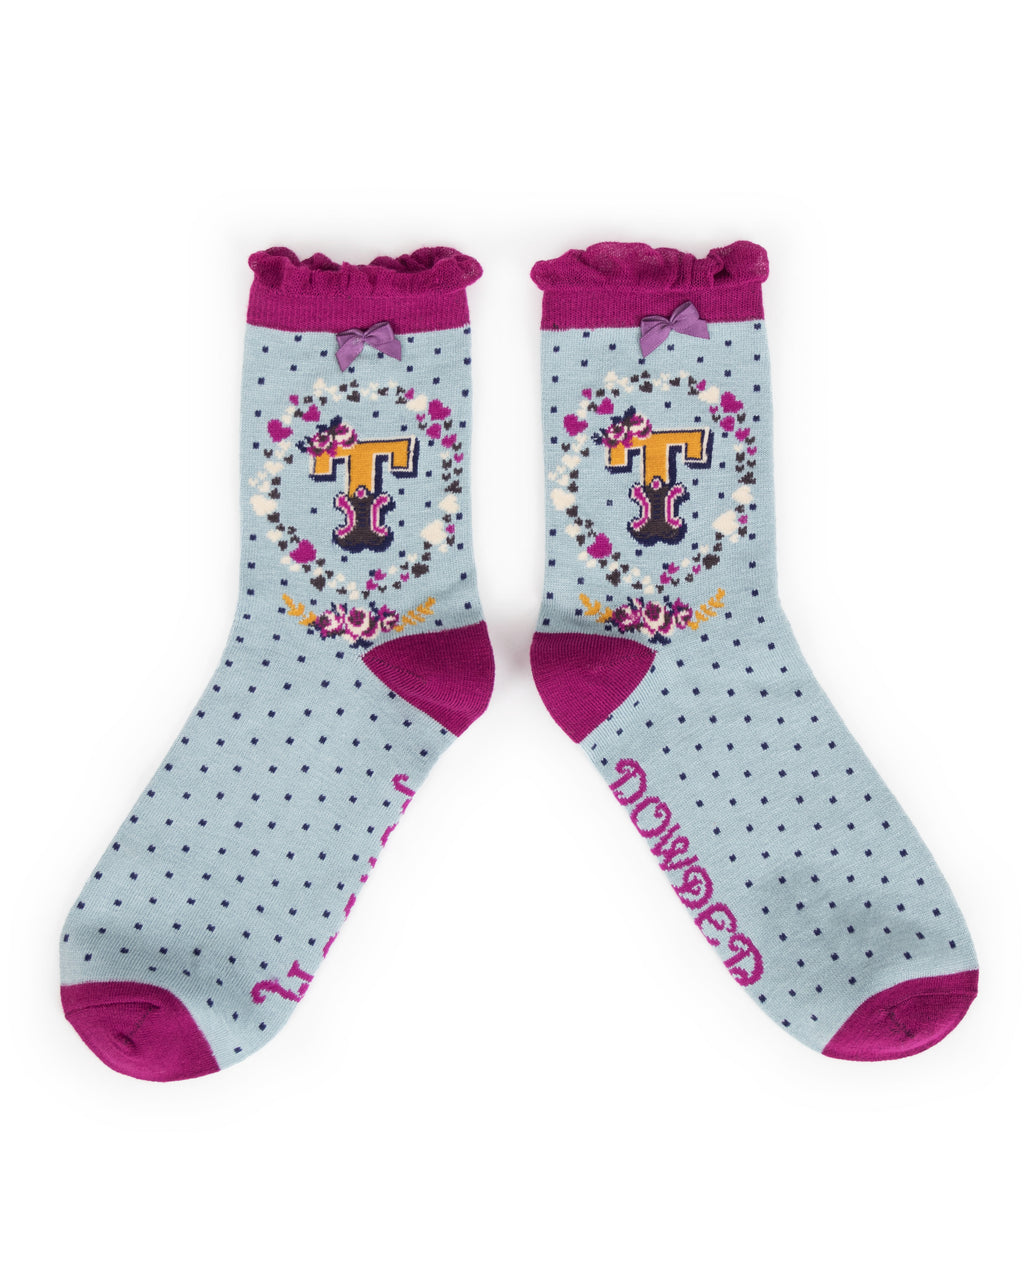 Powder A-Z Ankle Socks - T